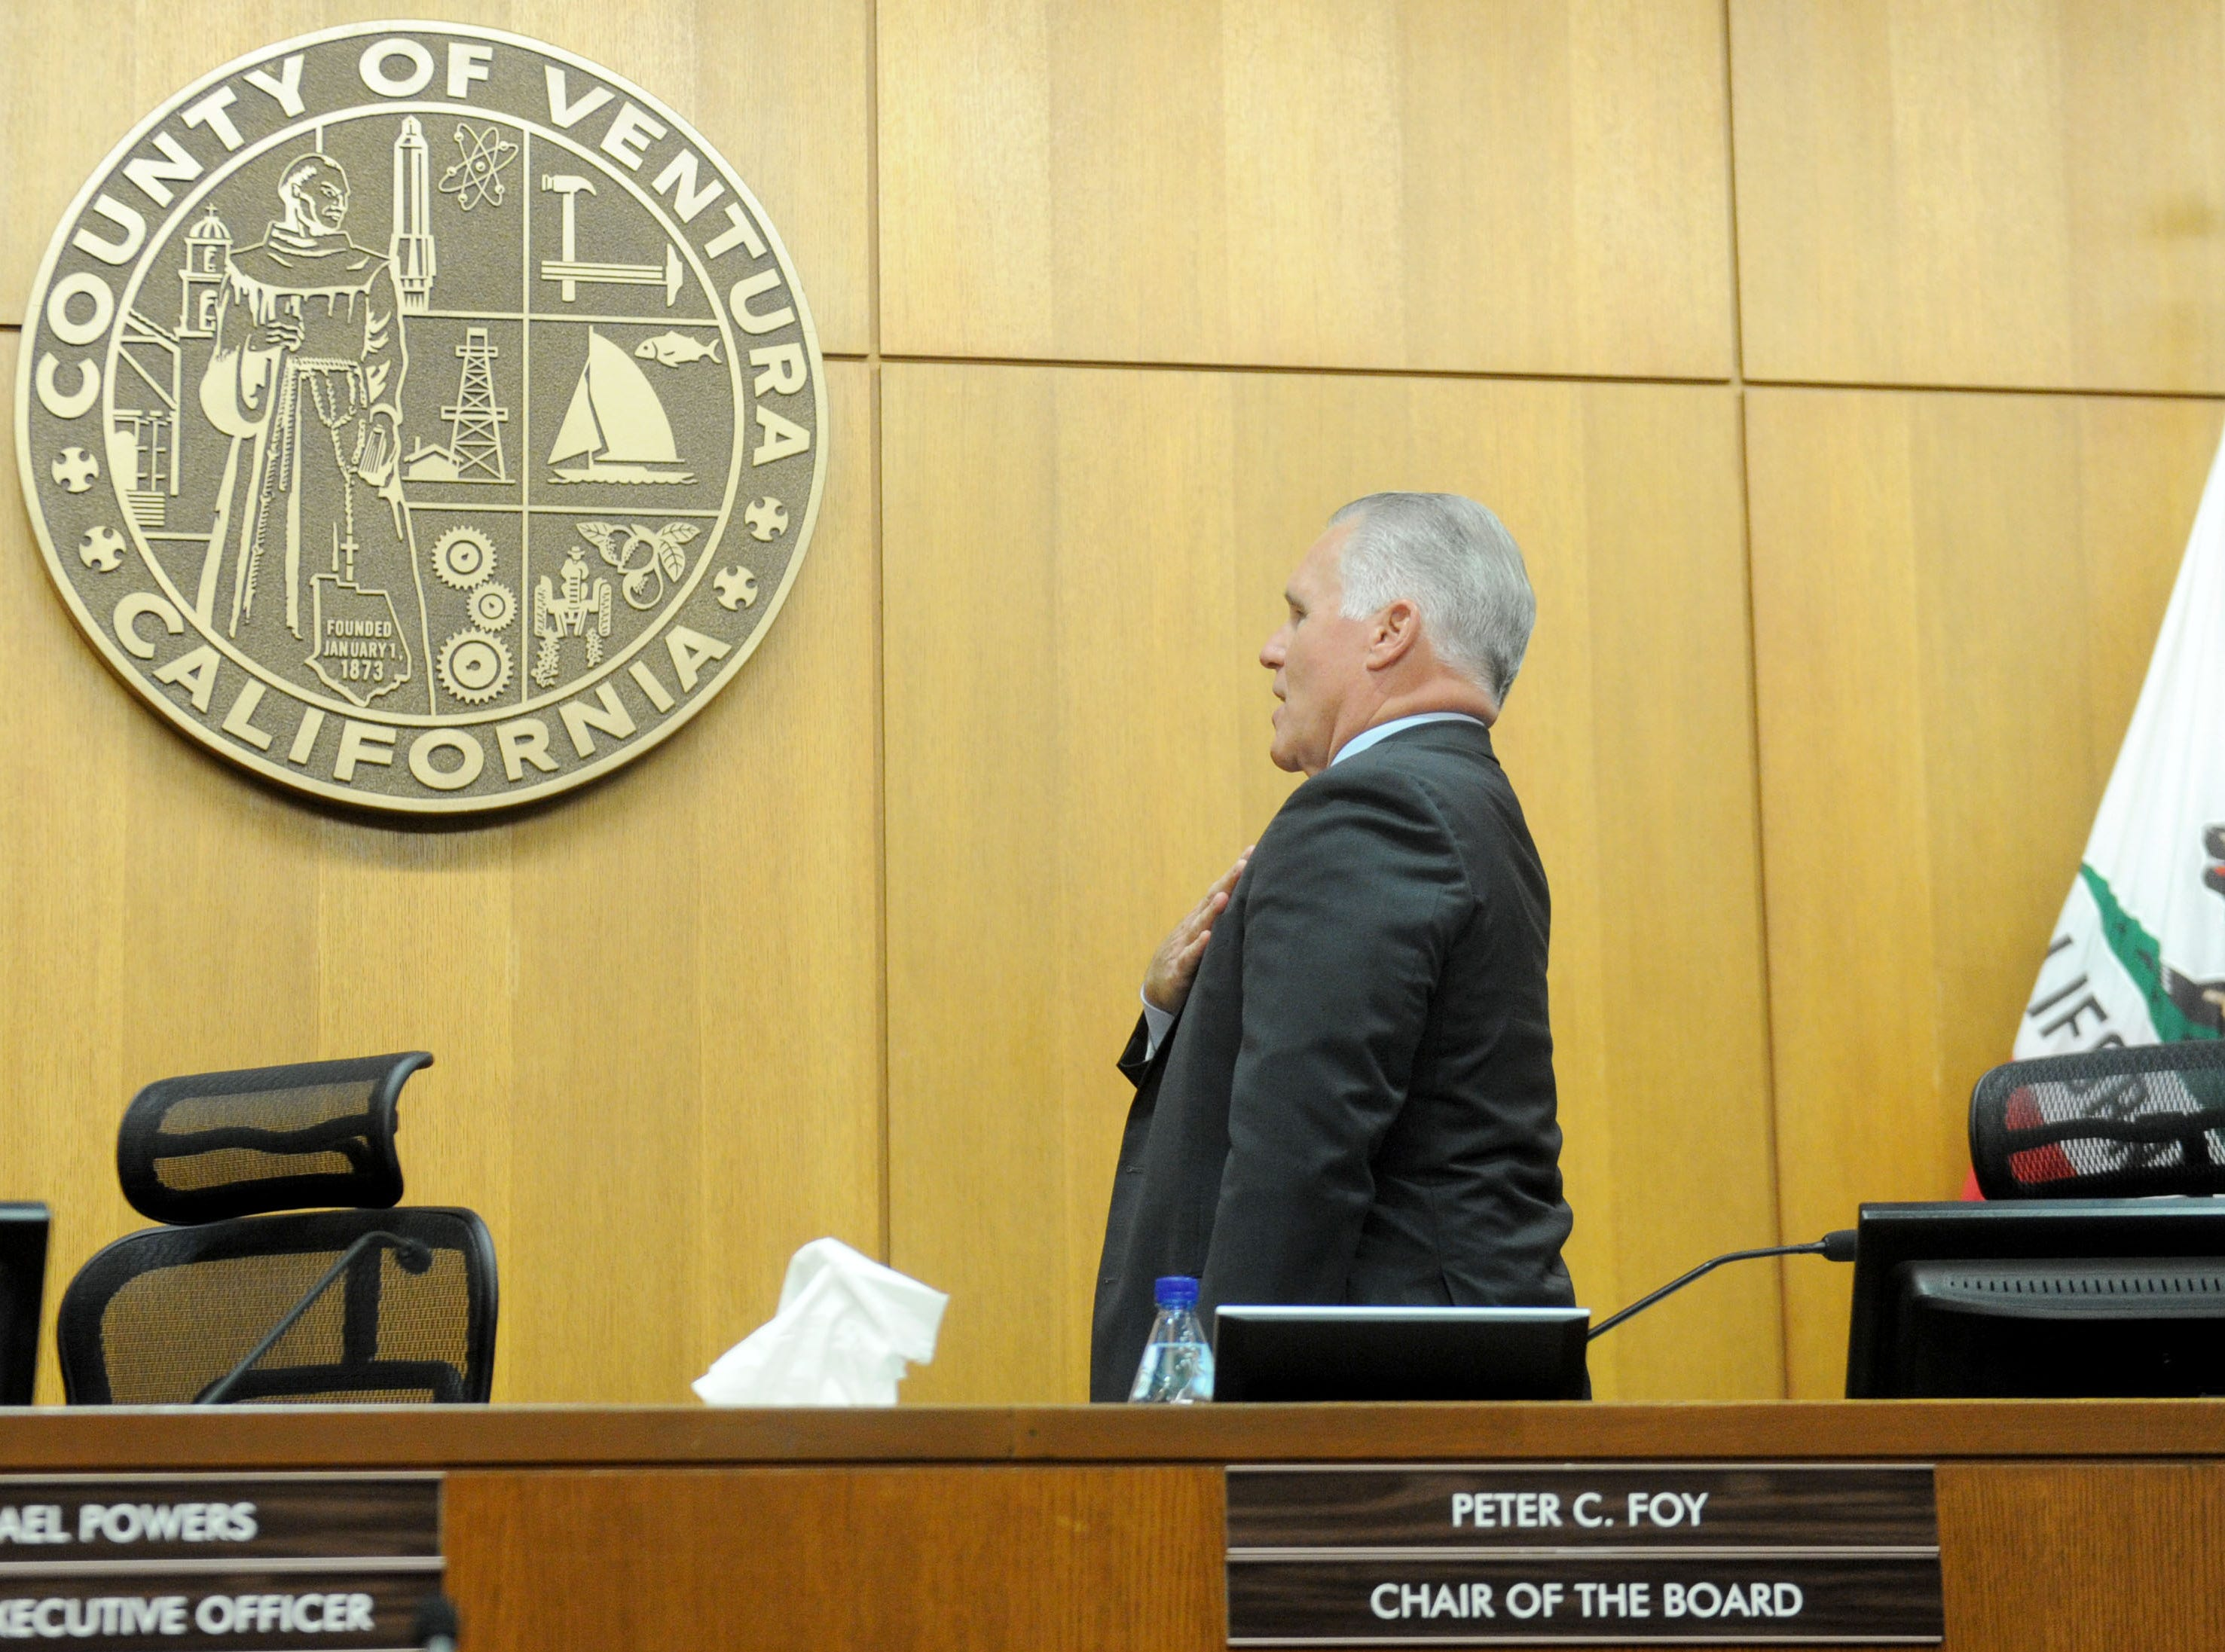 Supervisor Peter Foy leads the Pledge of Allegiance Tuesday at the Board of Supervisors meeting in Ventura. The occasion marked the last board meeting for Foy although his term does not end until Jan. 7.